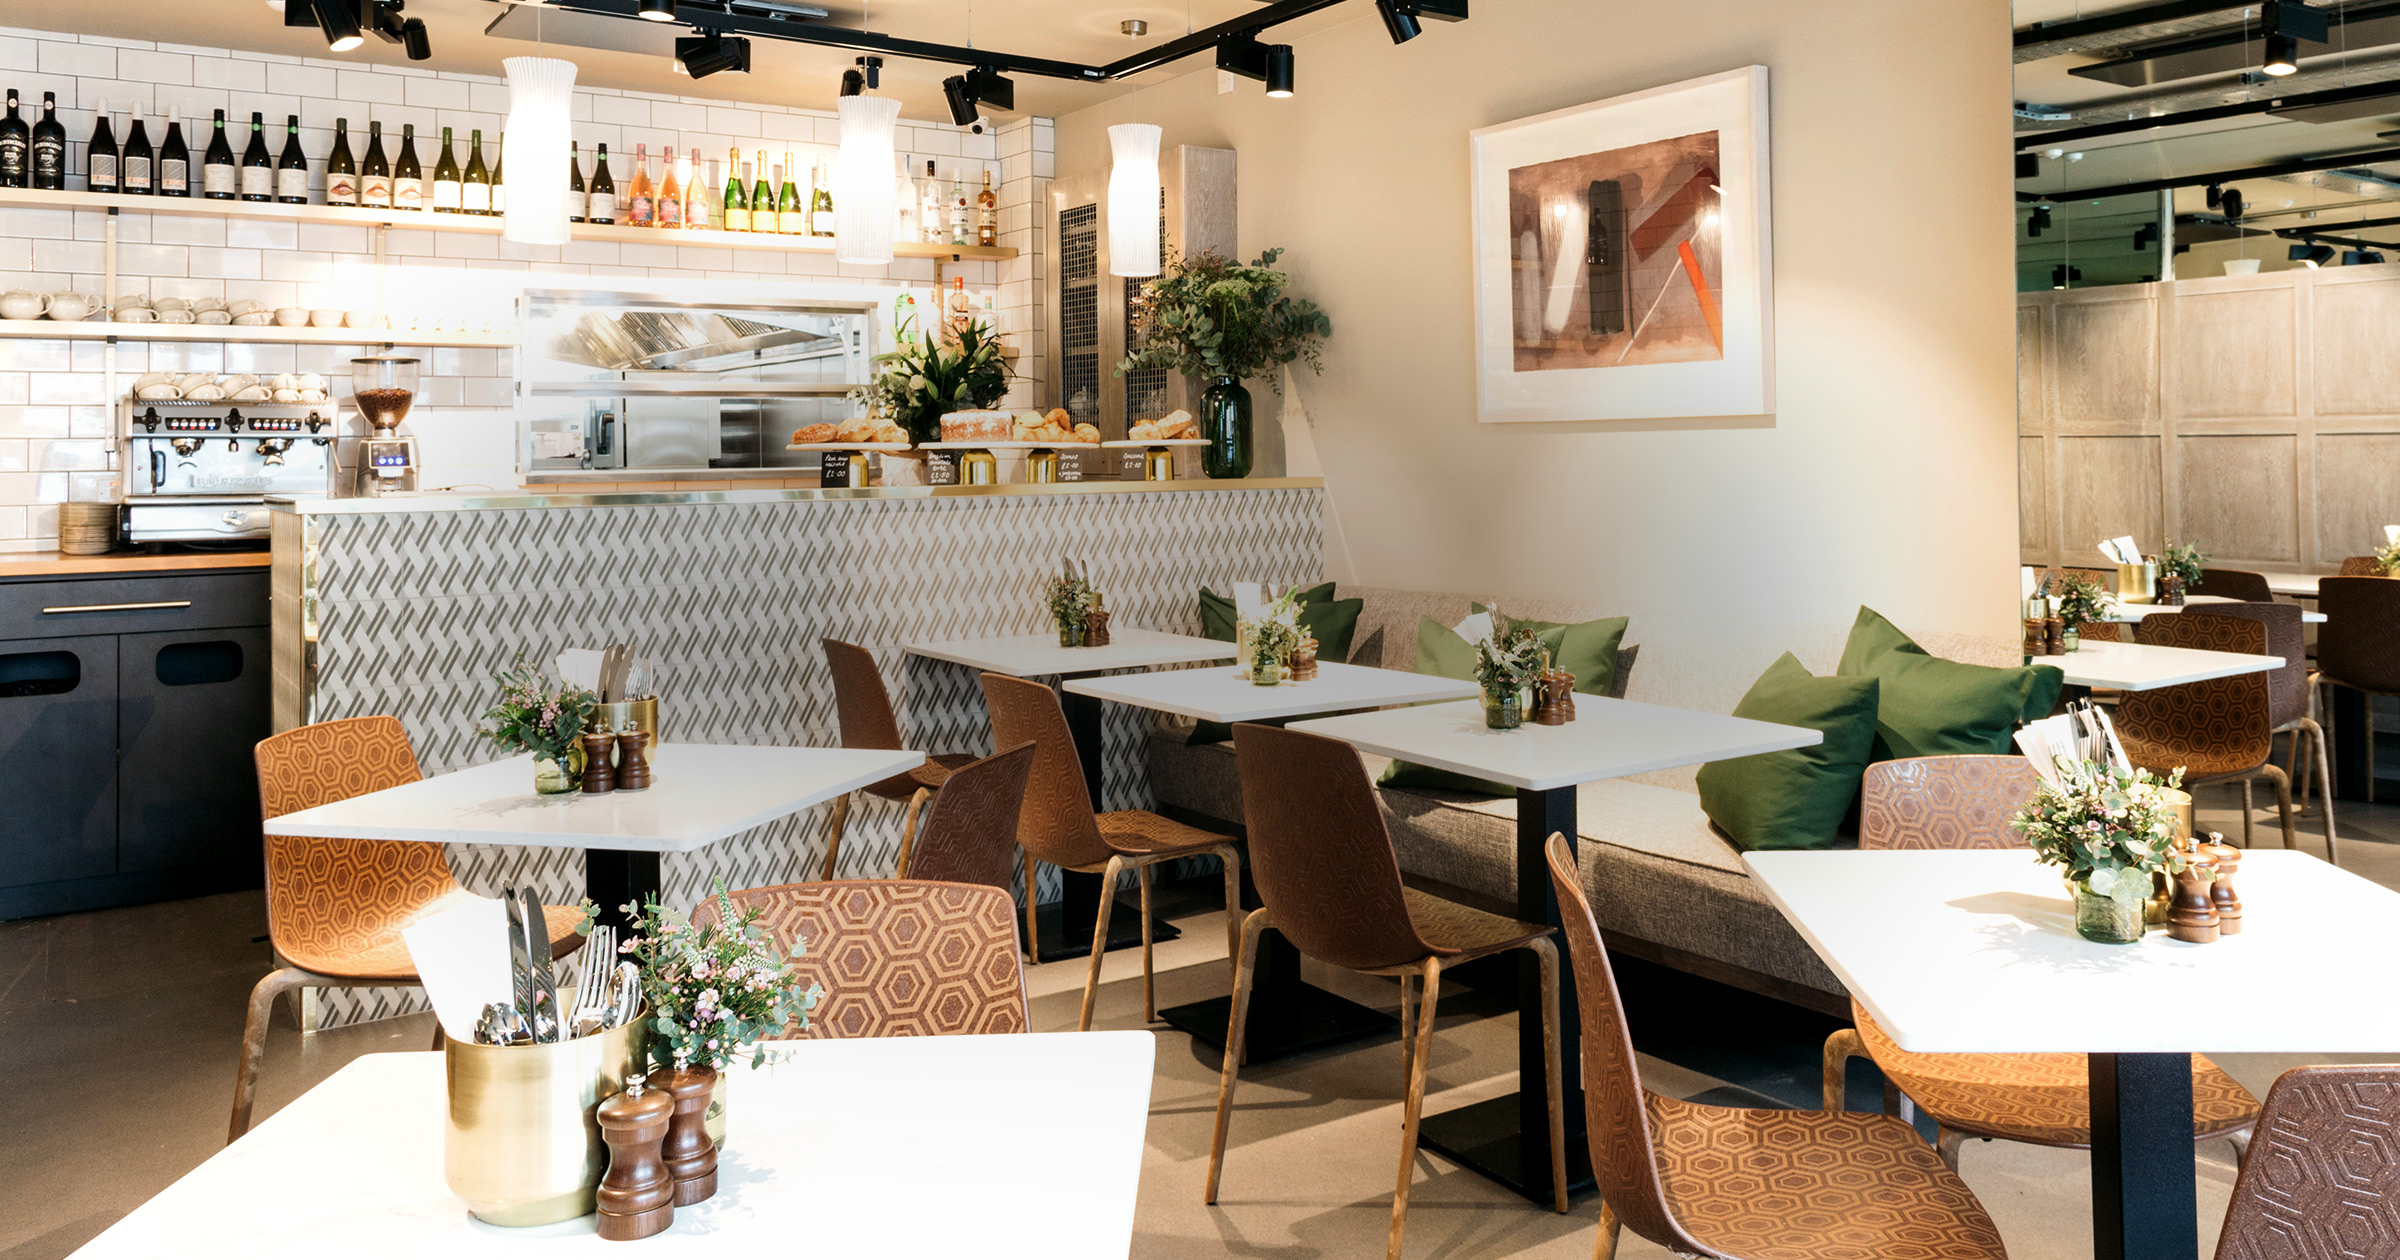 the new destination for long brunches with all your hungover friends -